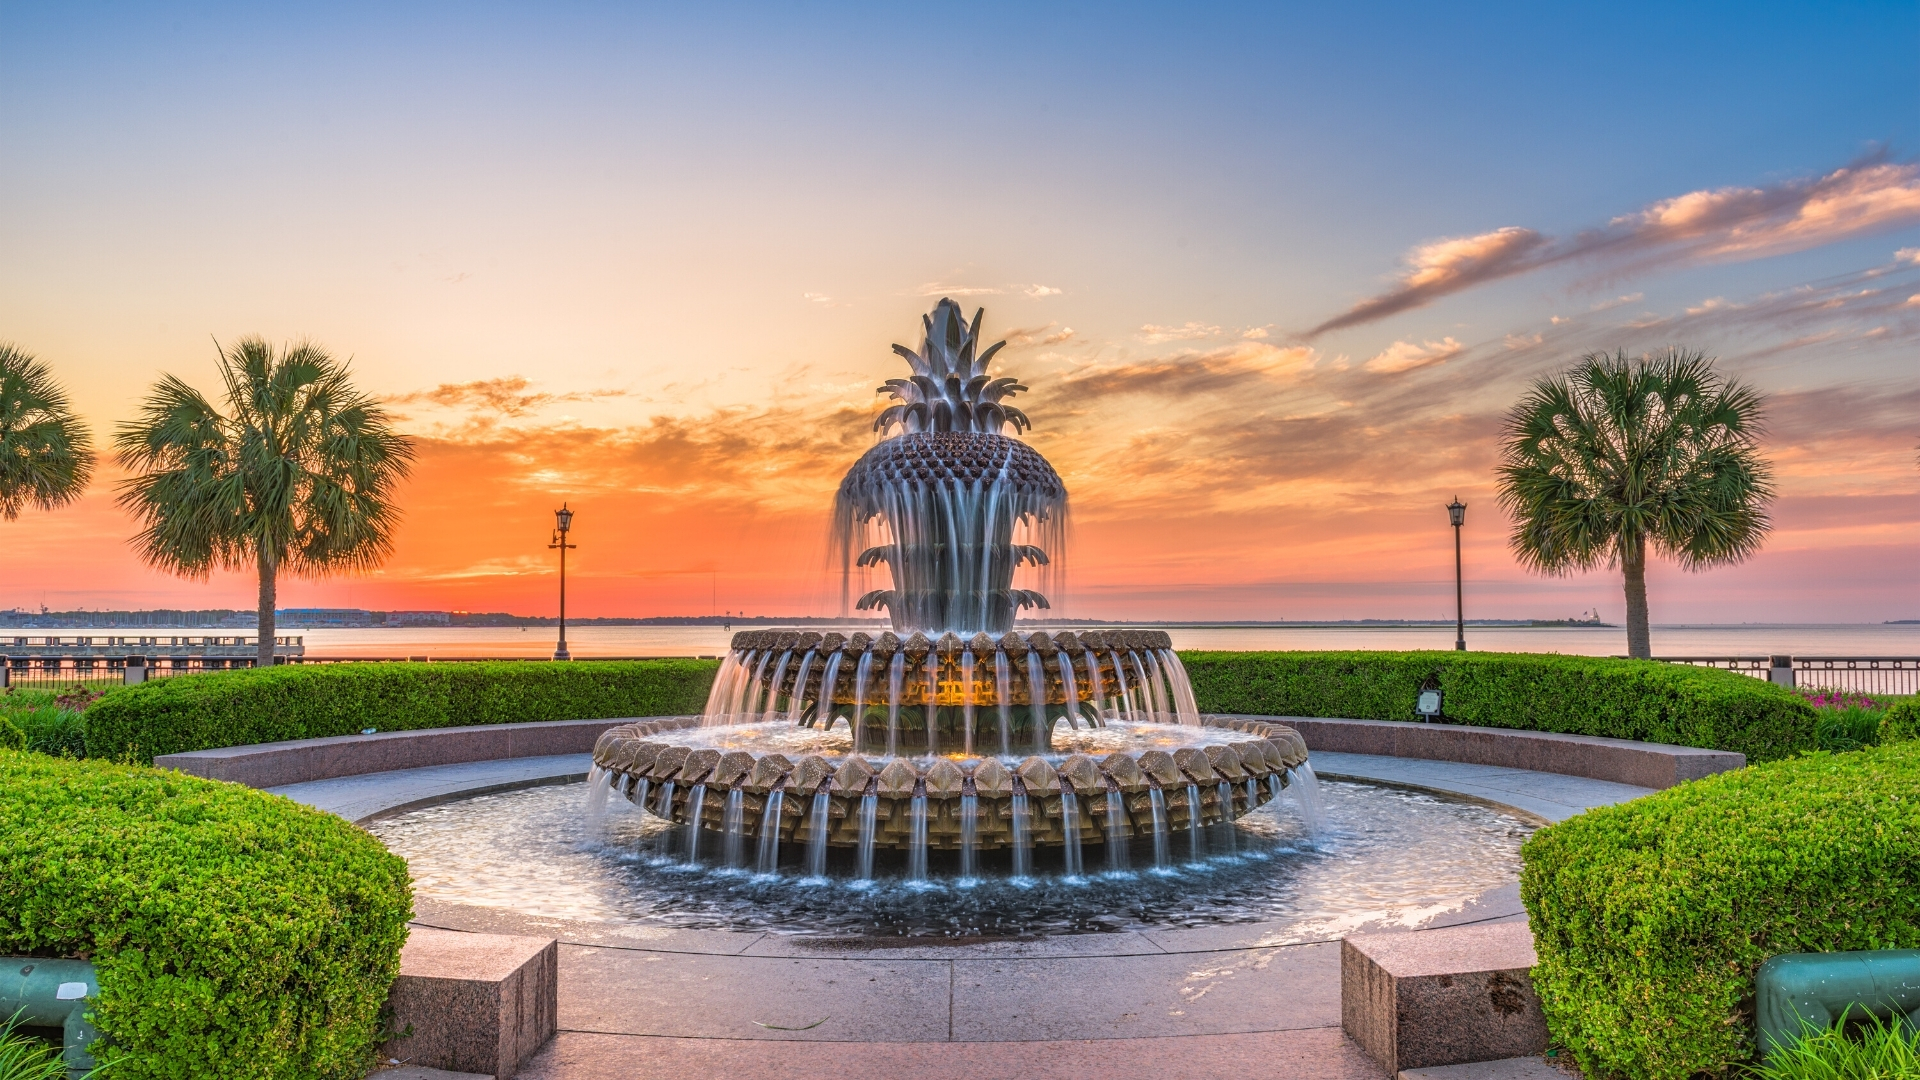 Downtown Charleston SC Attraction - Pineapple Fountain